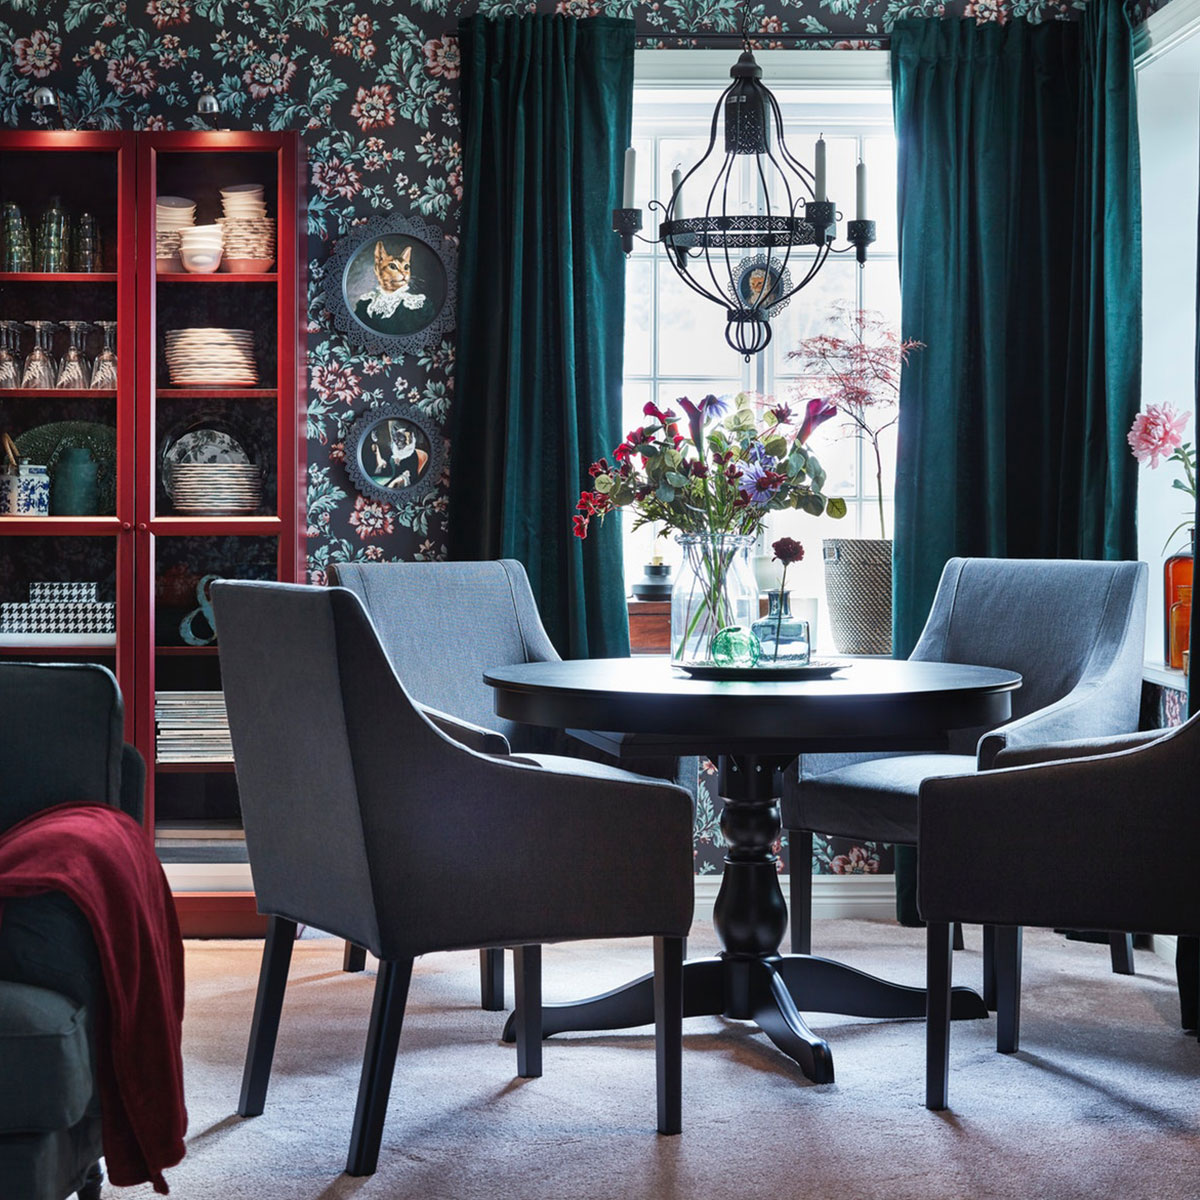 IKEA INGATORP black round extendable table and four SAKARIAS dining chairs in grey.